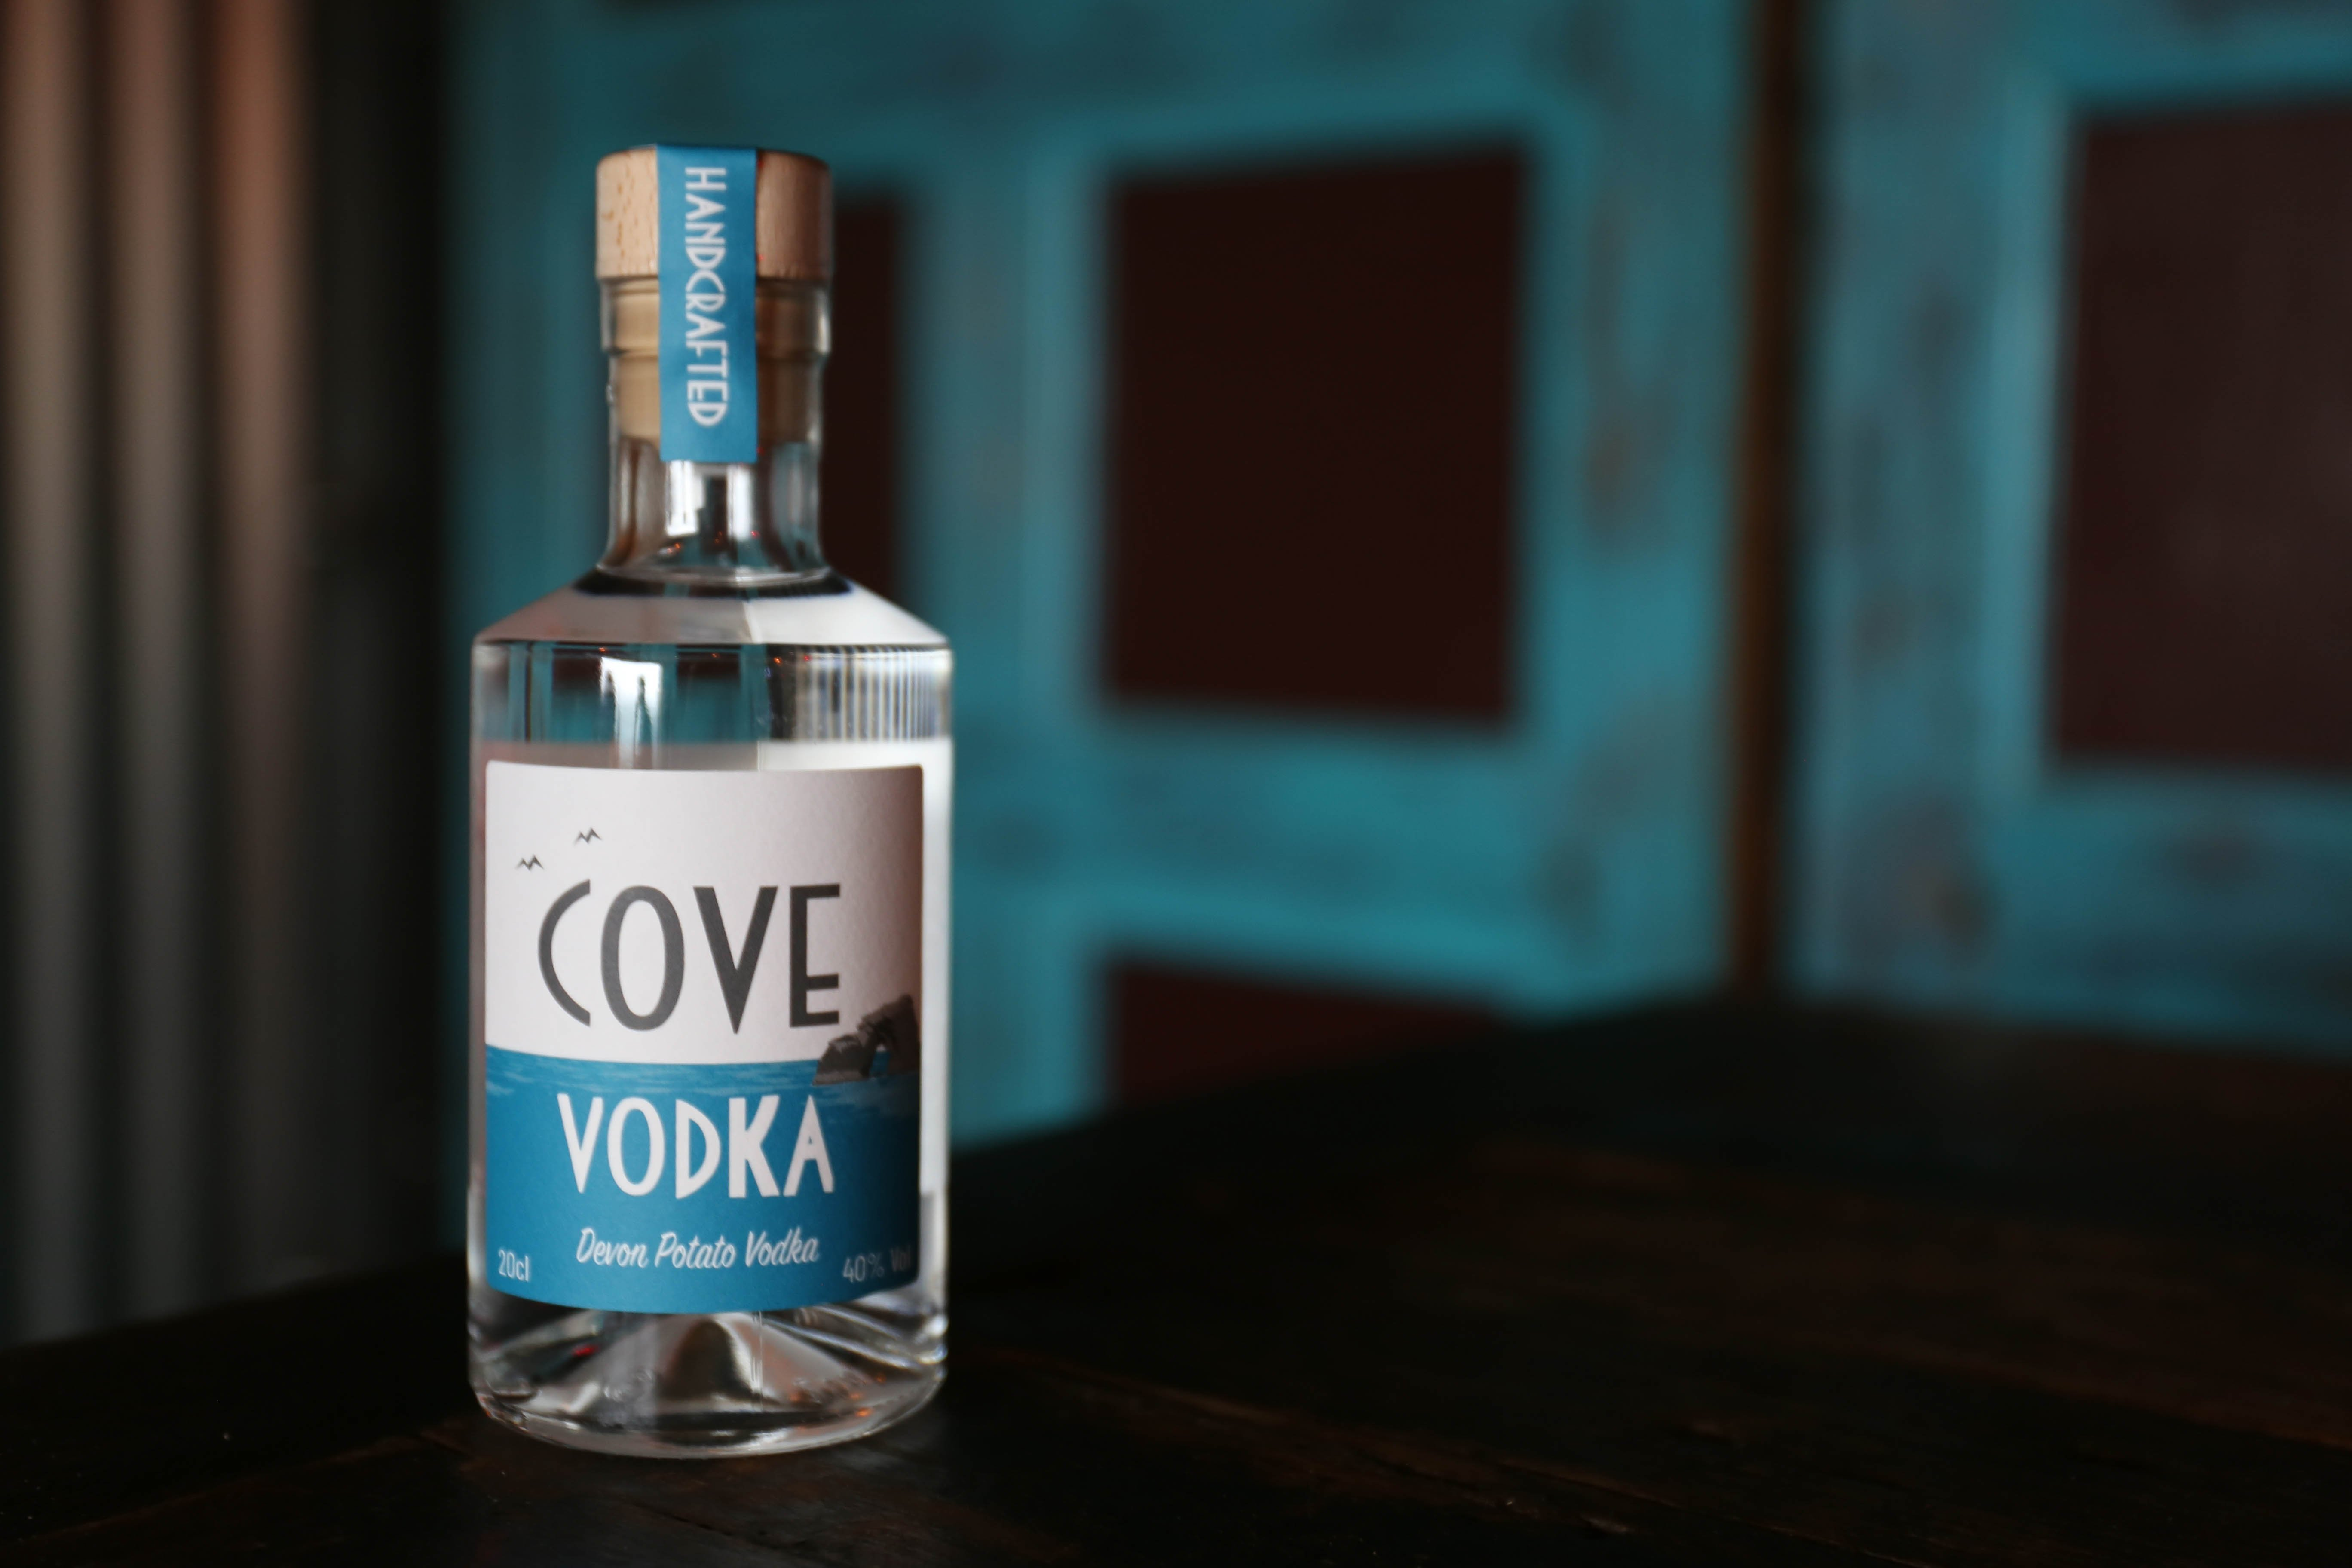 Cove Vodka 20cl in The Cove